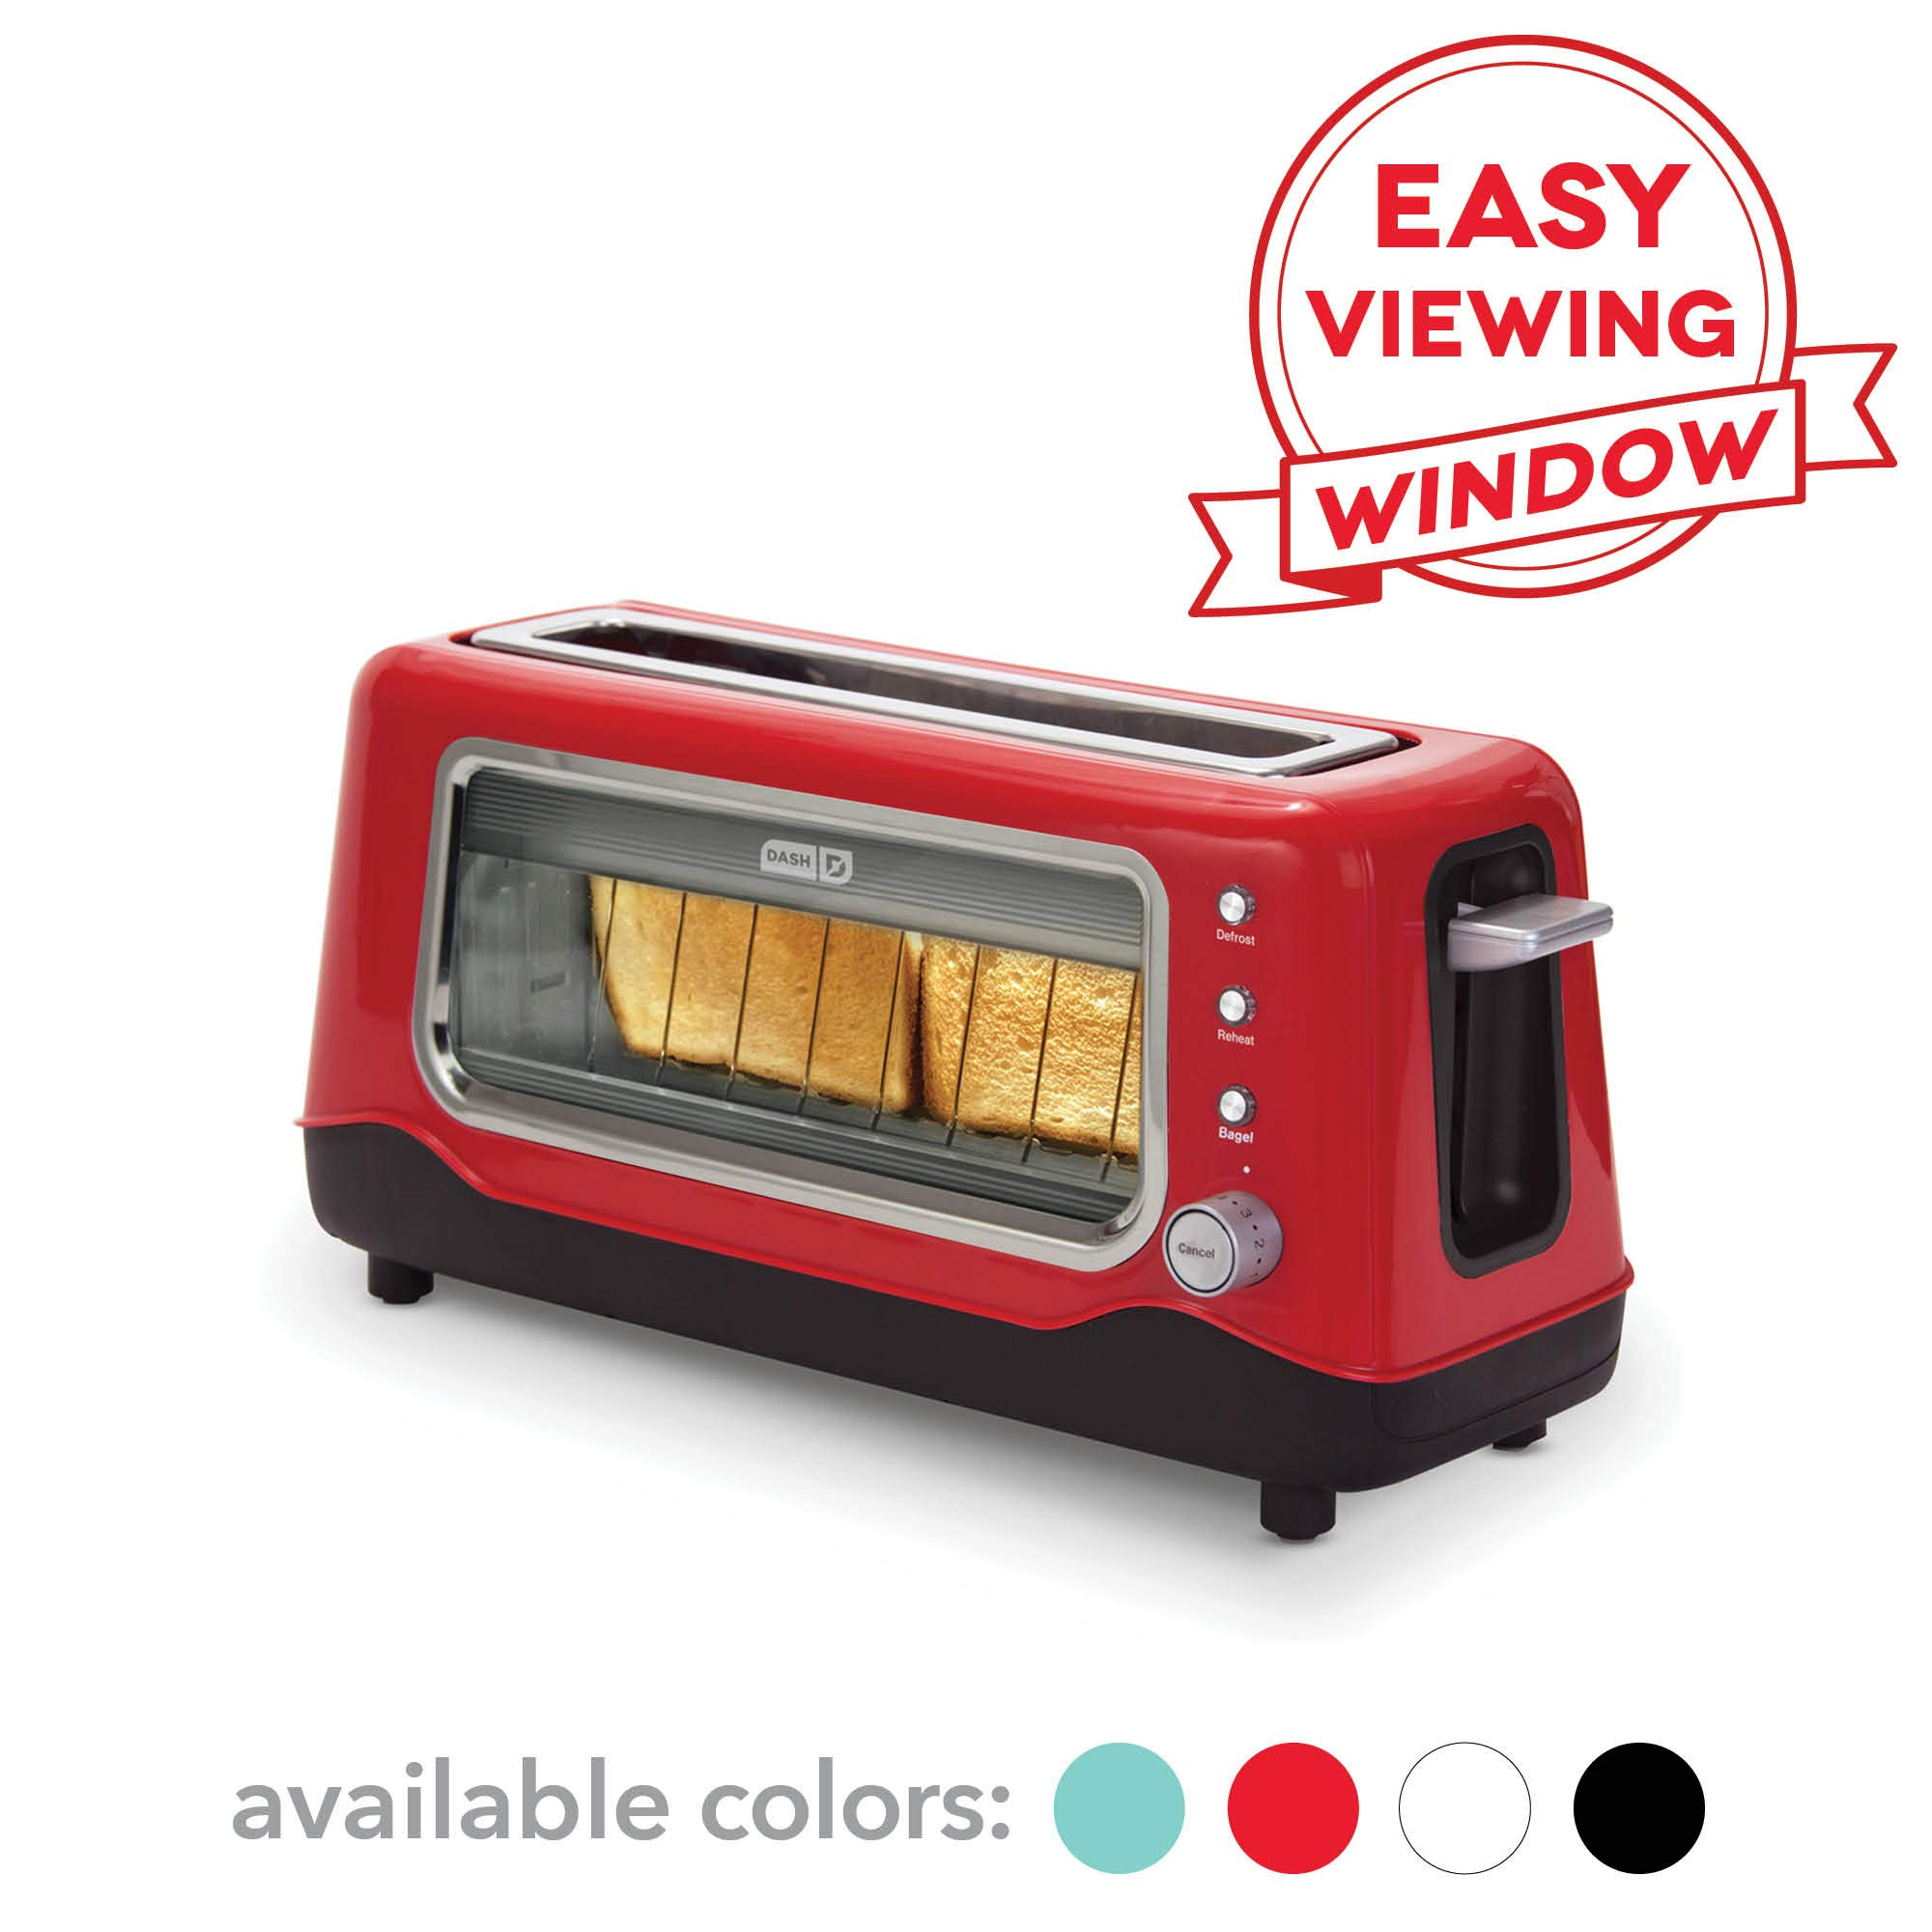 Dash DVTS501RD Clear View: Extra Wide Slot Toaster with Stainless Steel Accents + See Through Window, Defrost, Reheat + Auto Shut Off Feature for Bagels, Specialty Breads & other Baked Goods, Red by DASH